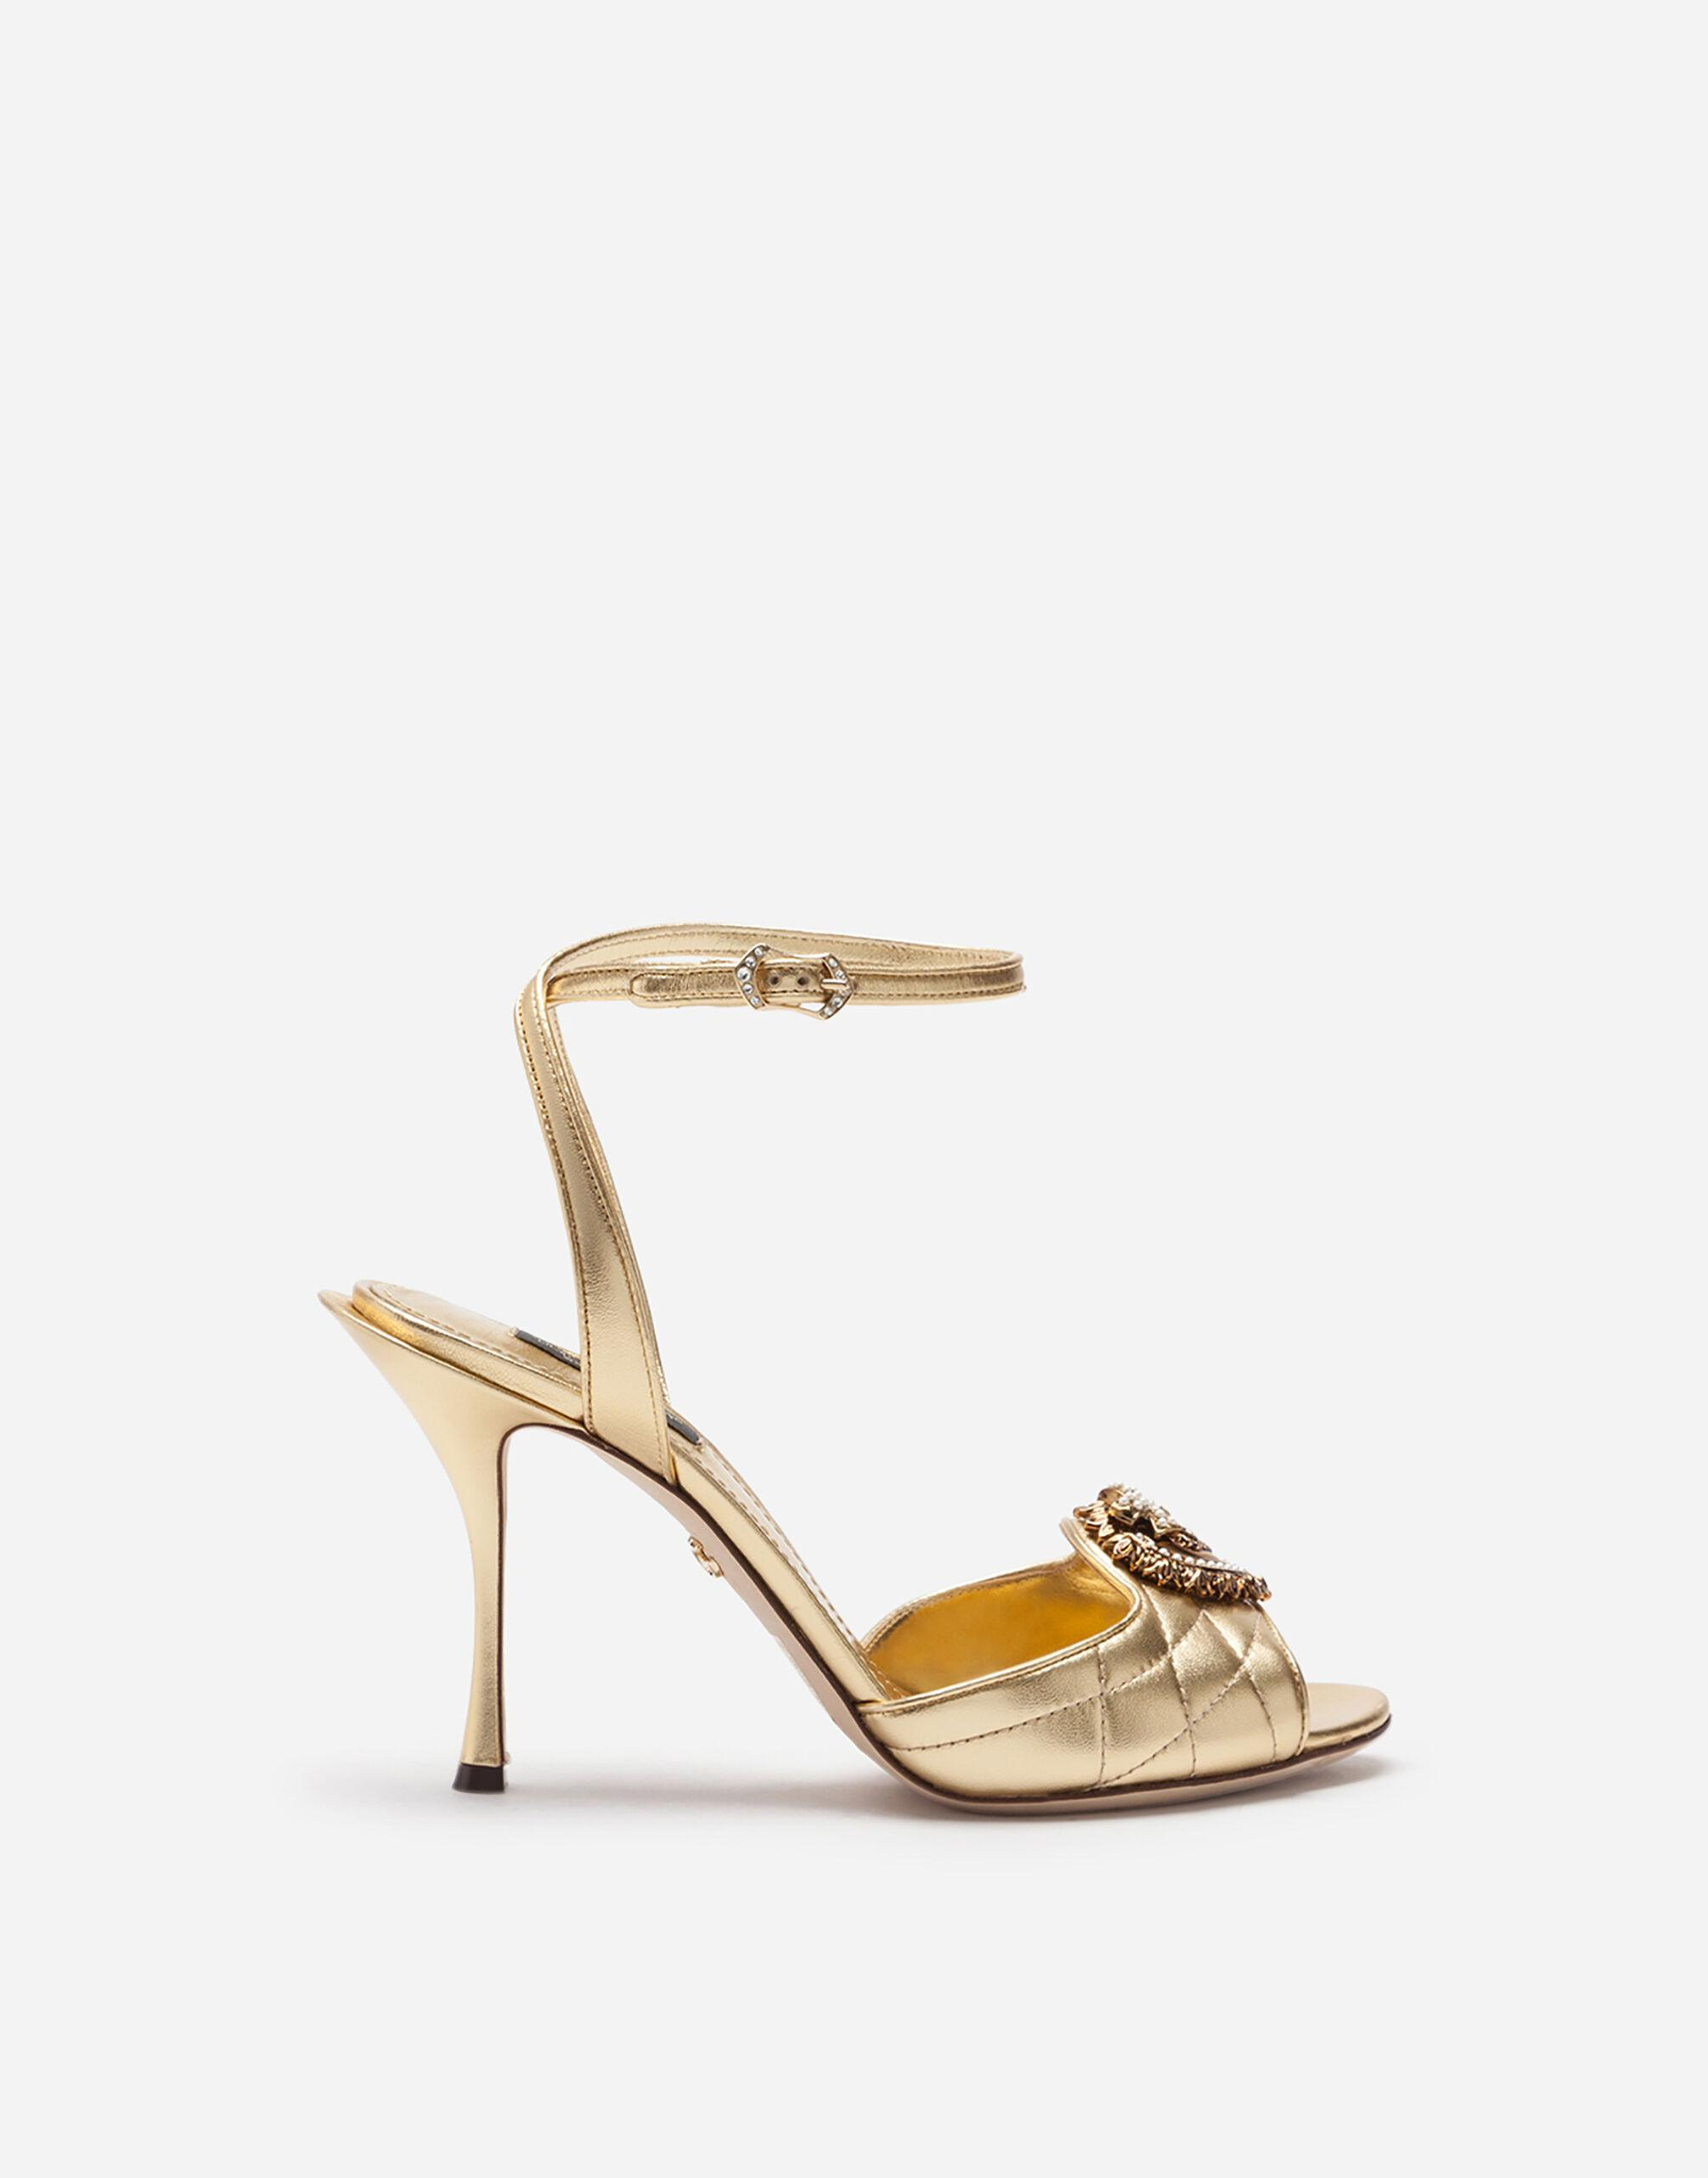 Quilted nappa mordore Devotion sandals